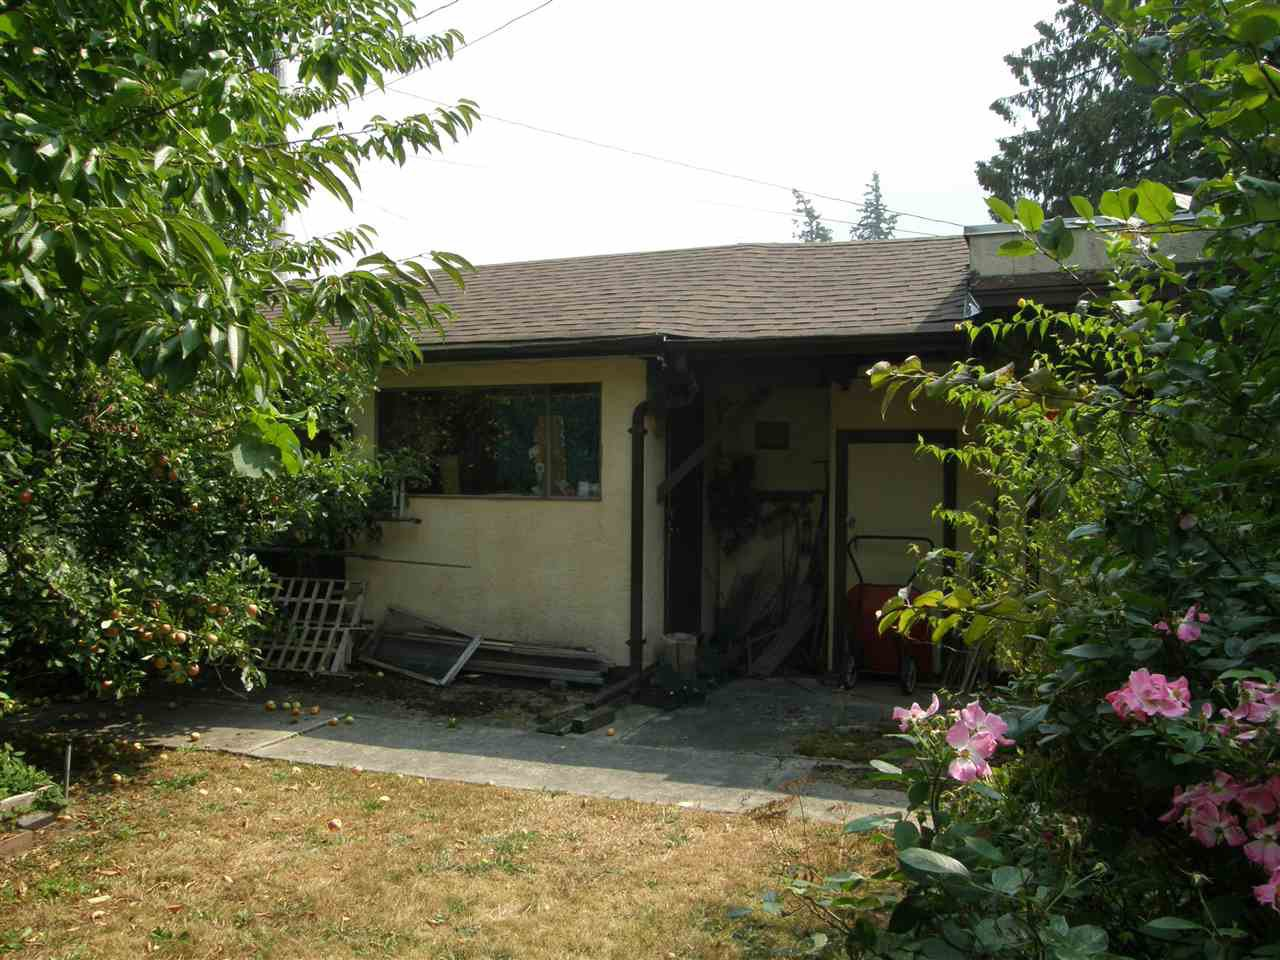 Photo 7: Photos: 539 3RD Avenue in Hope: Hope Center House for sale : MLS®# R2446429